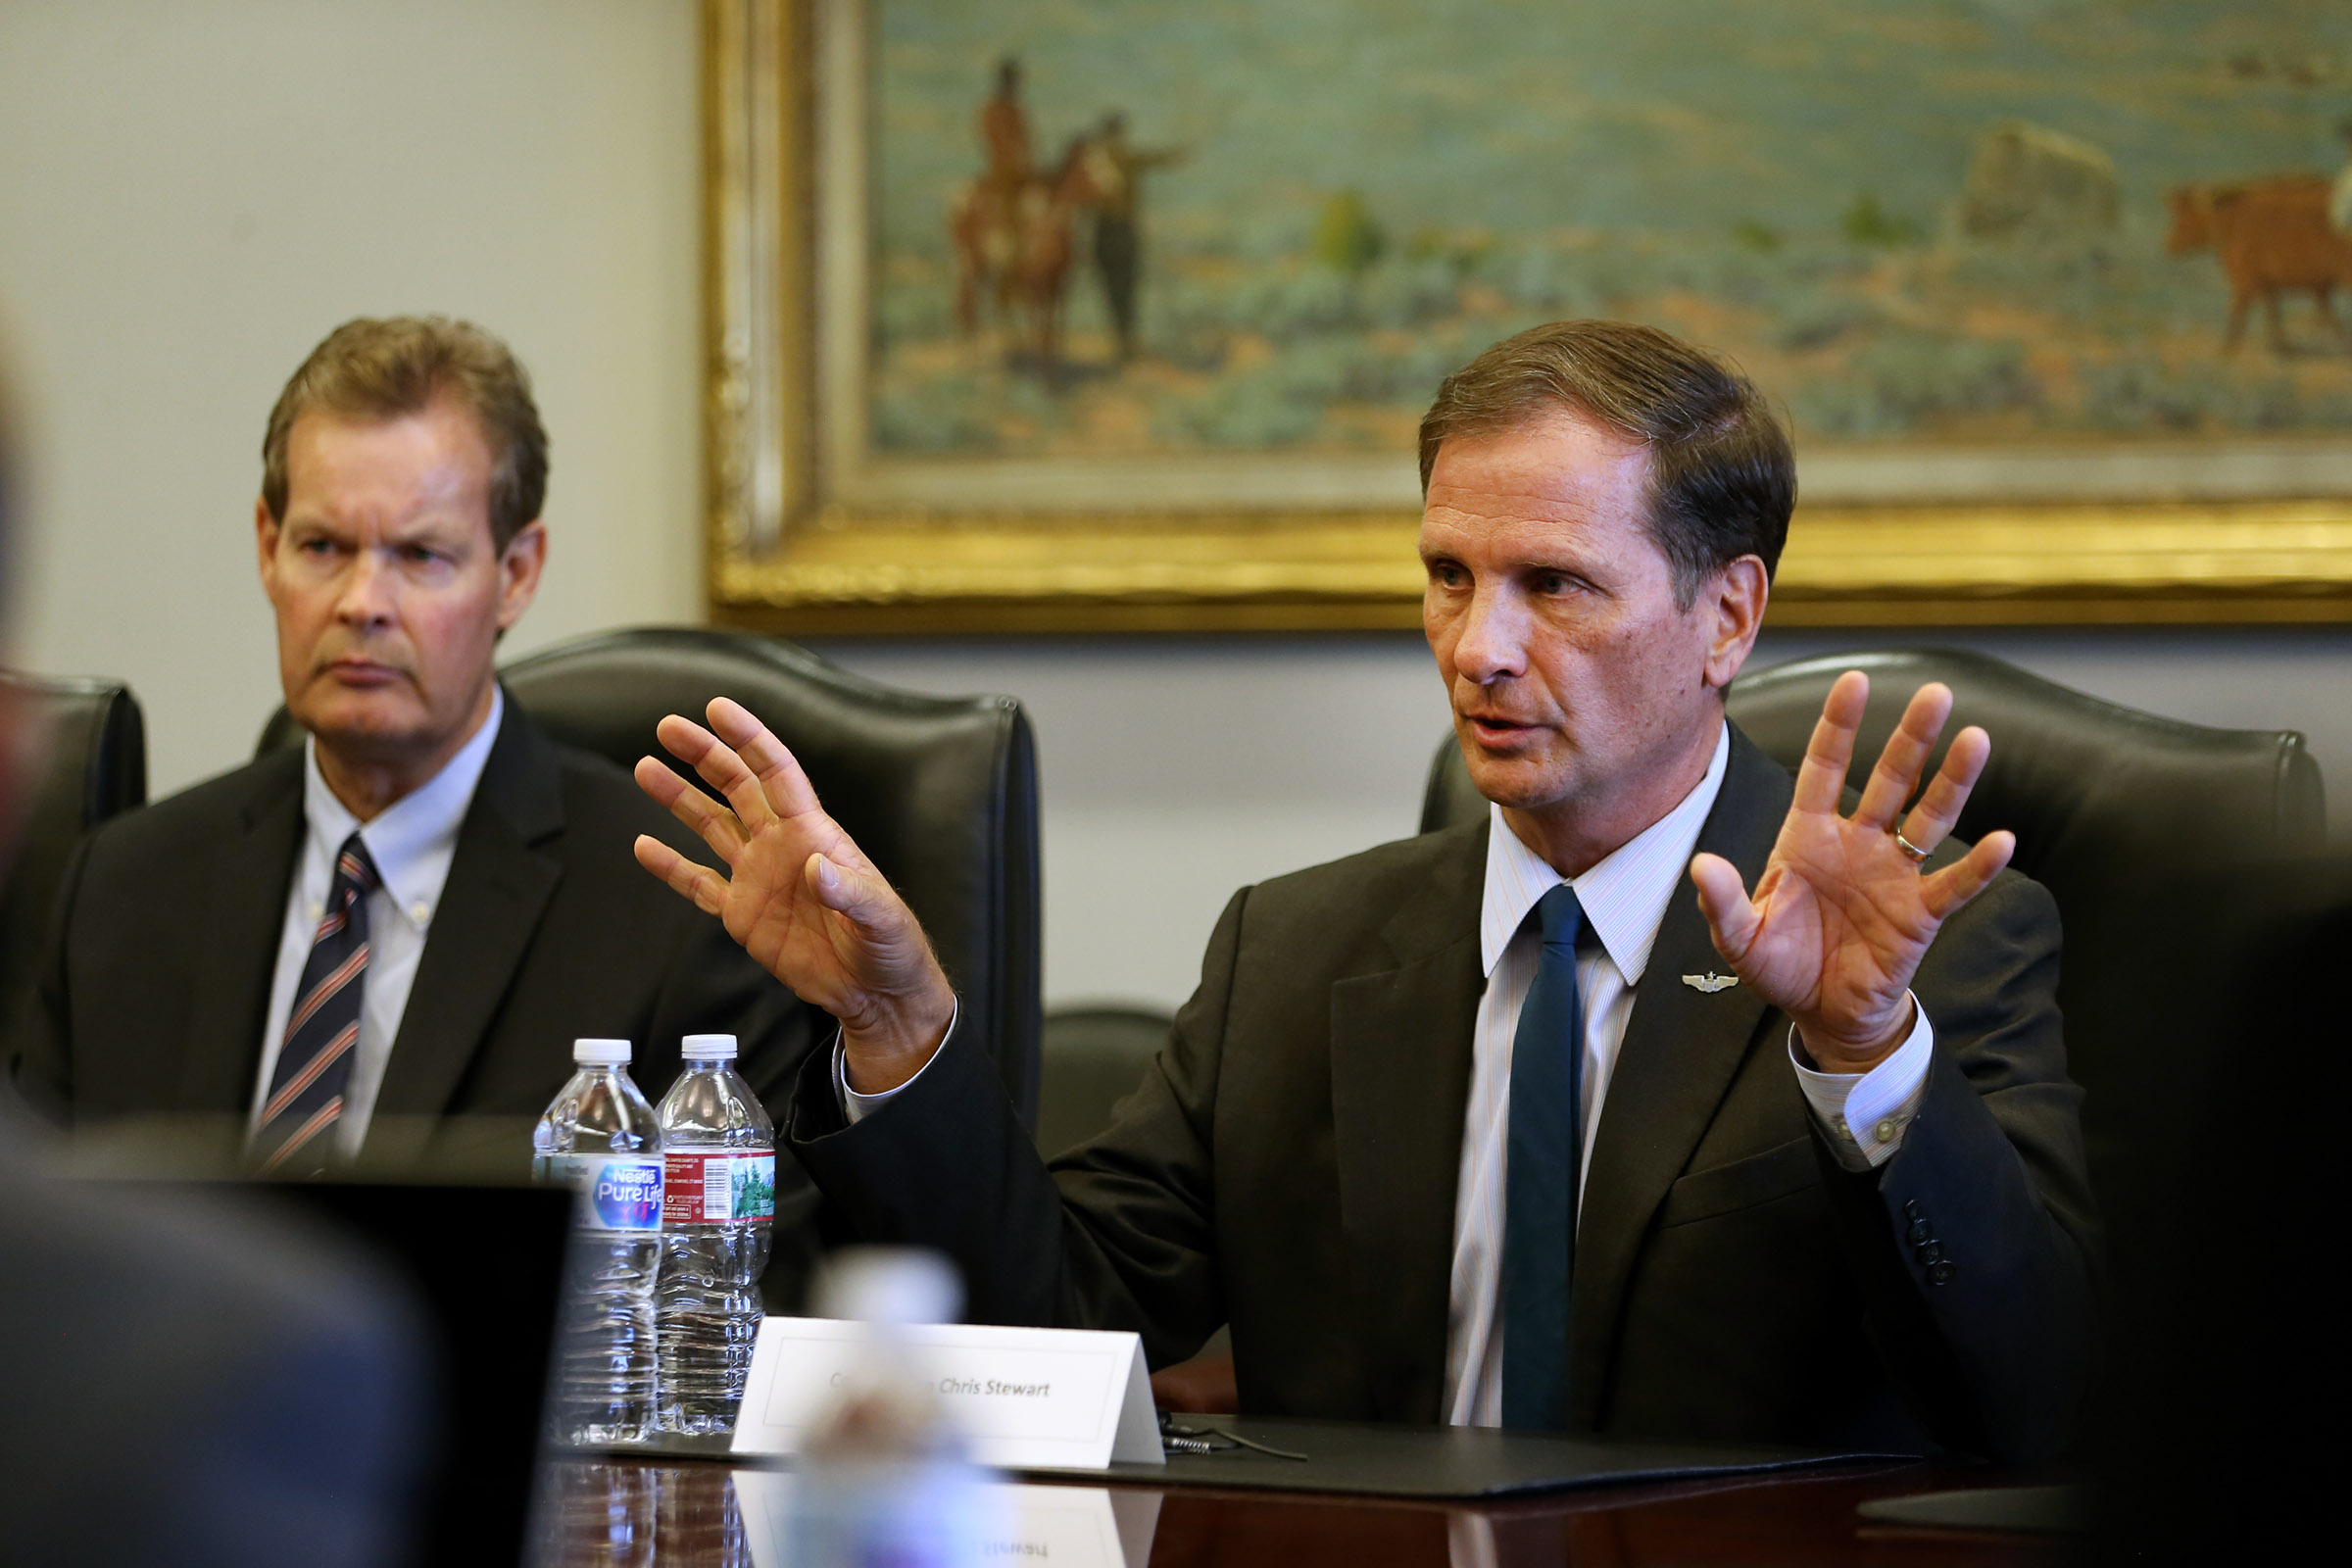 Congressman Chris Stewart, right, talks with the Deseret News editorial board with Gary Webster at Triad Center in Salt Lake City on Wednesday, Sept. 20, 2017.